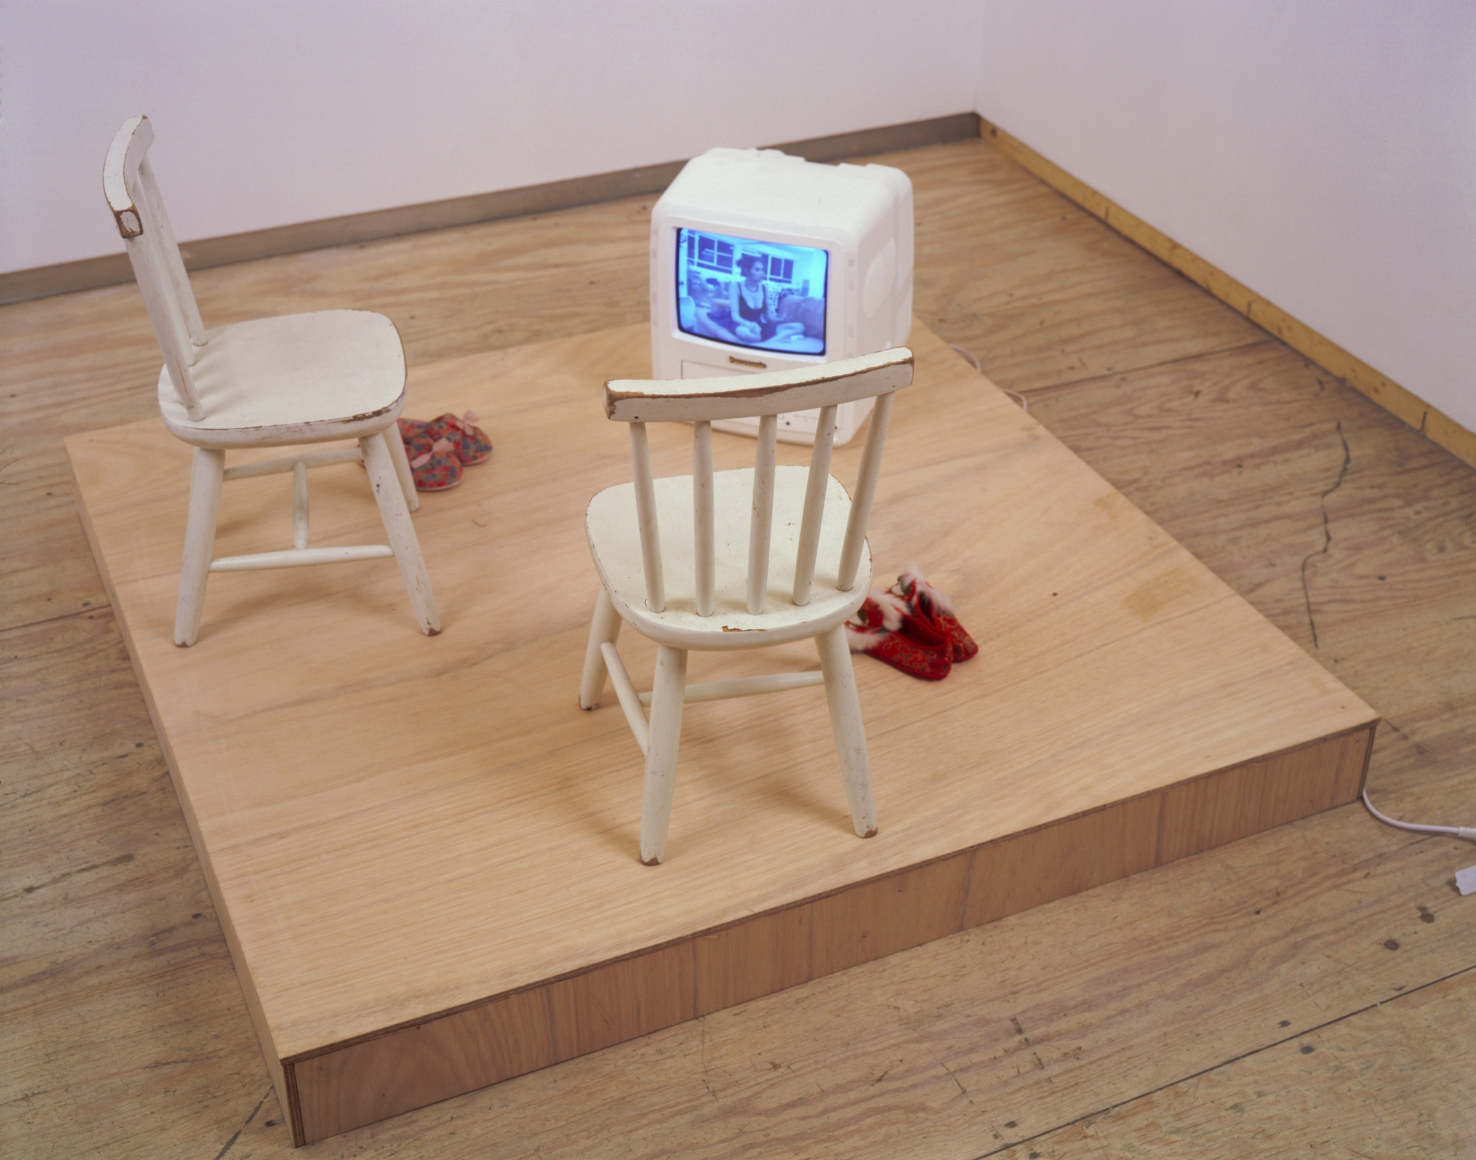 TRACEY EMIN, The Interview, 1999